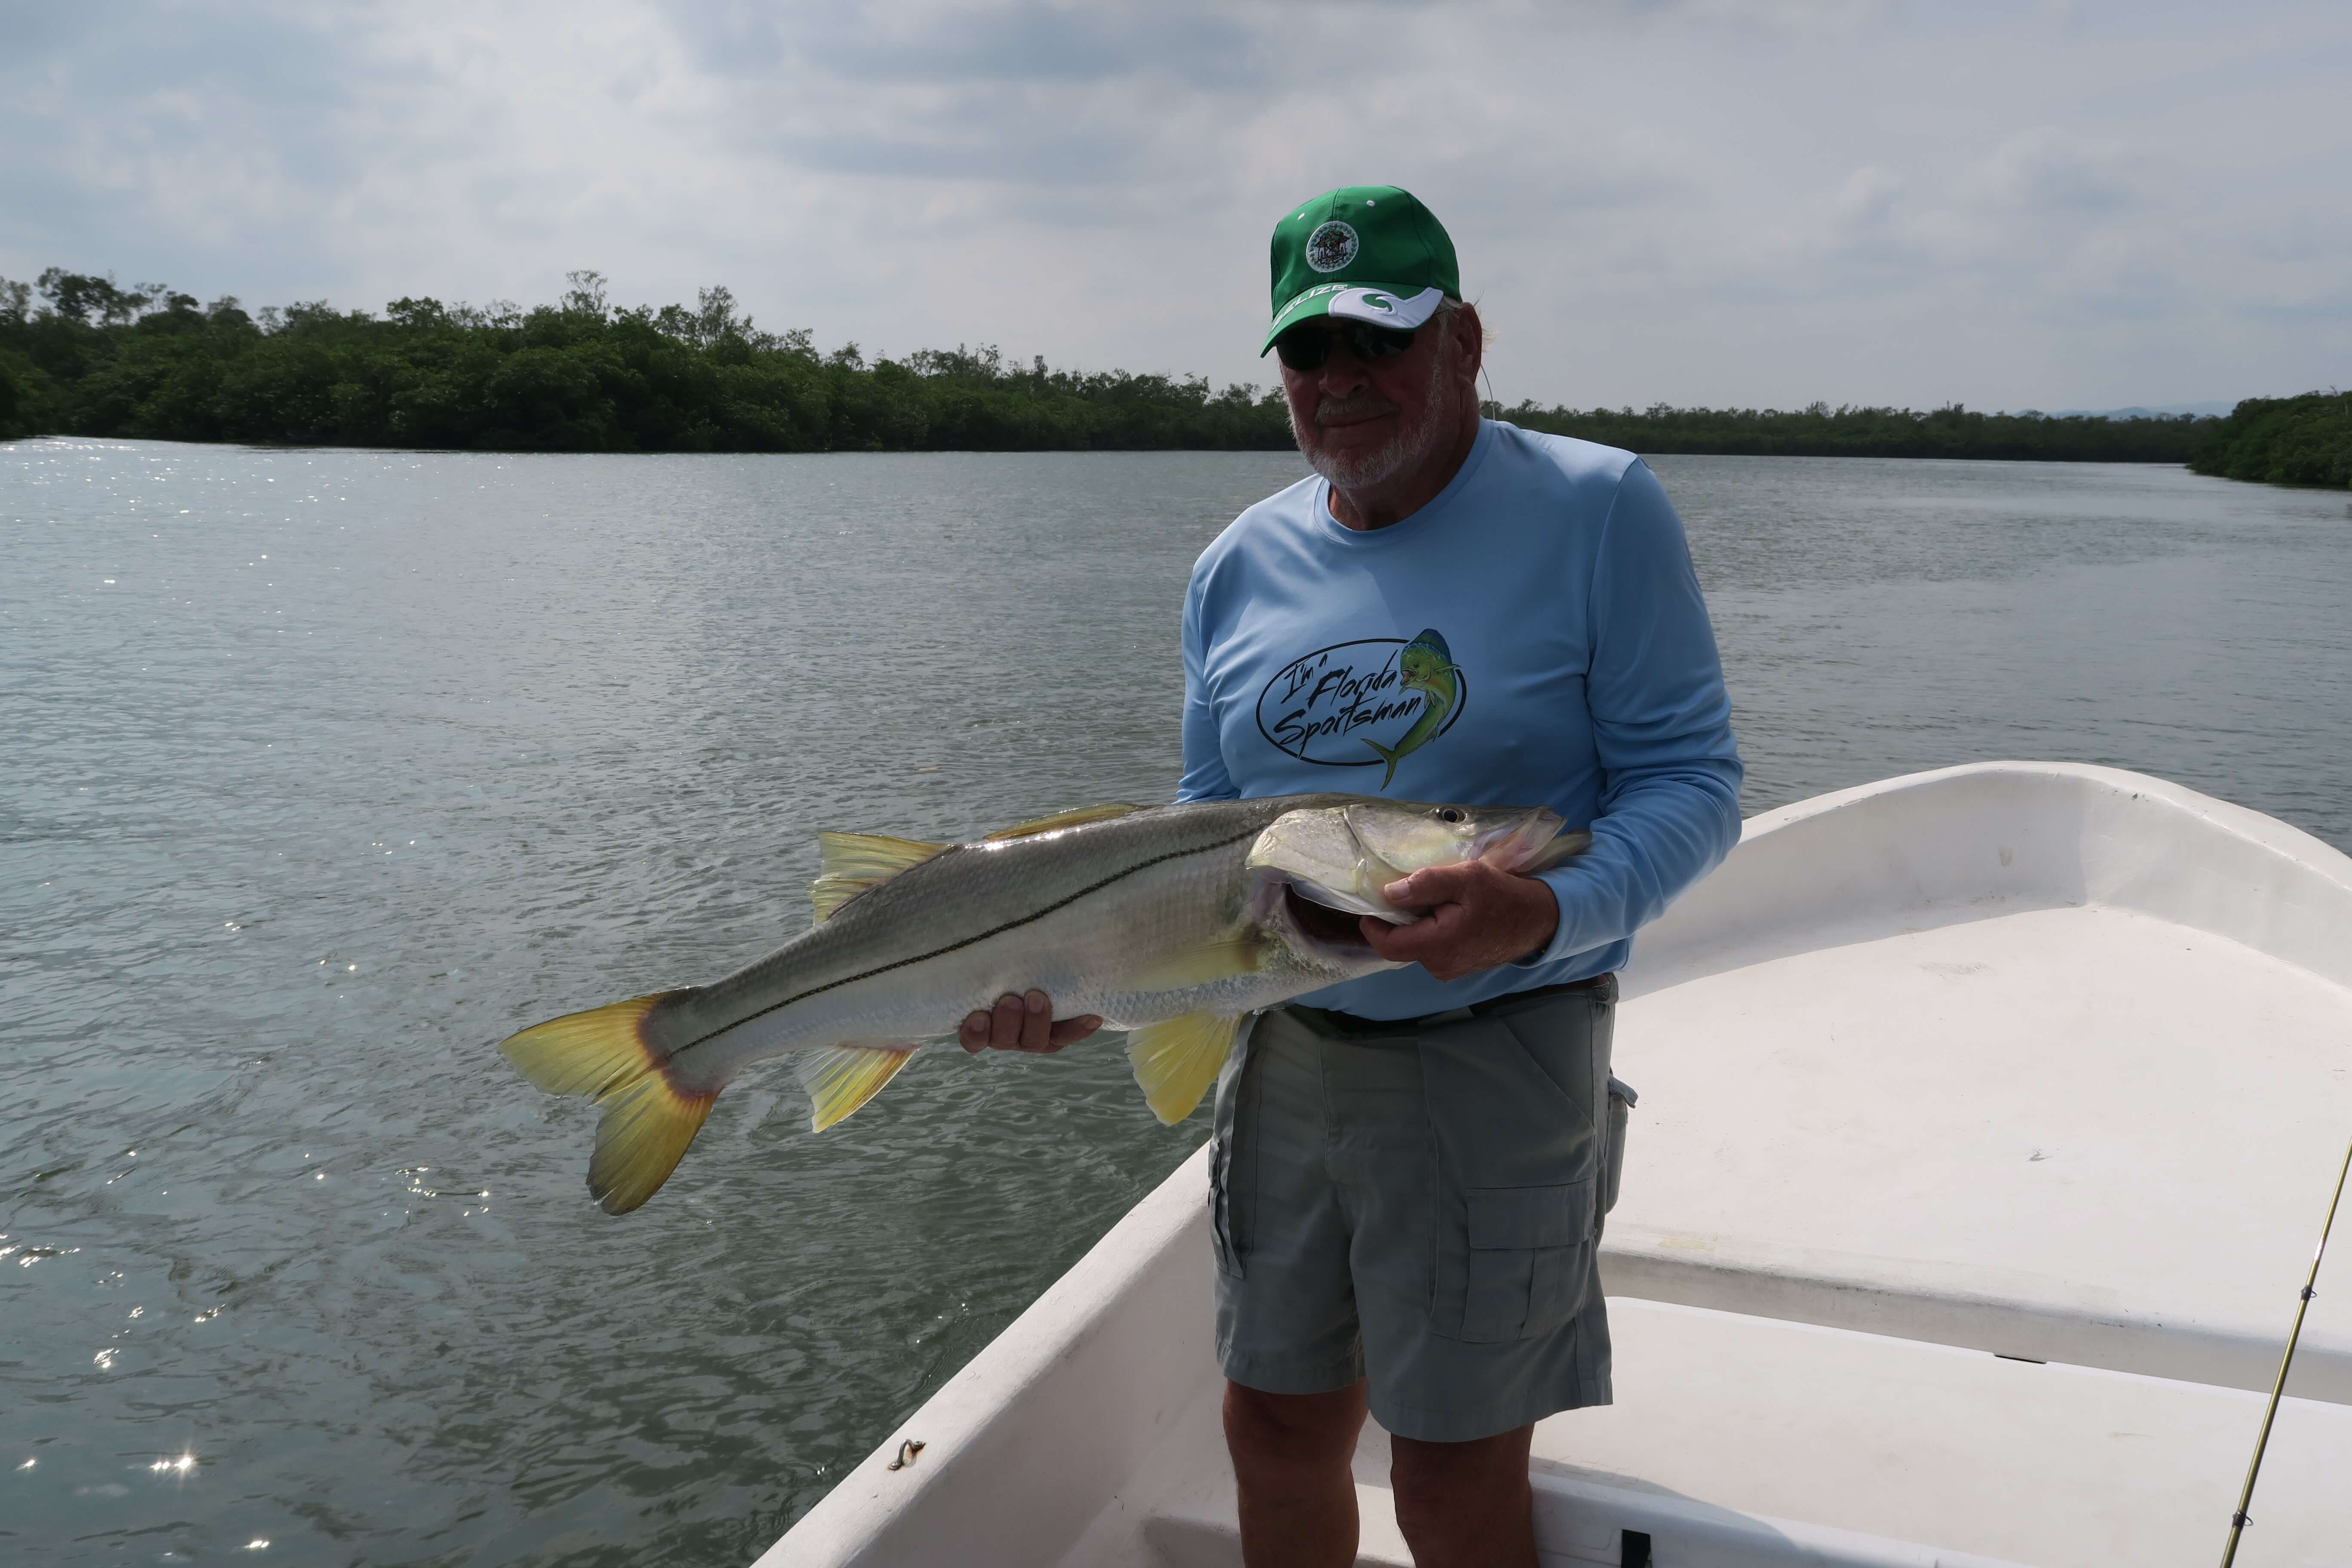 veterans fishing trip example 2